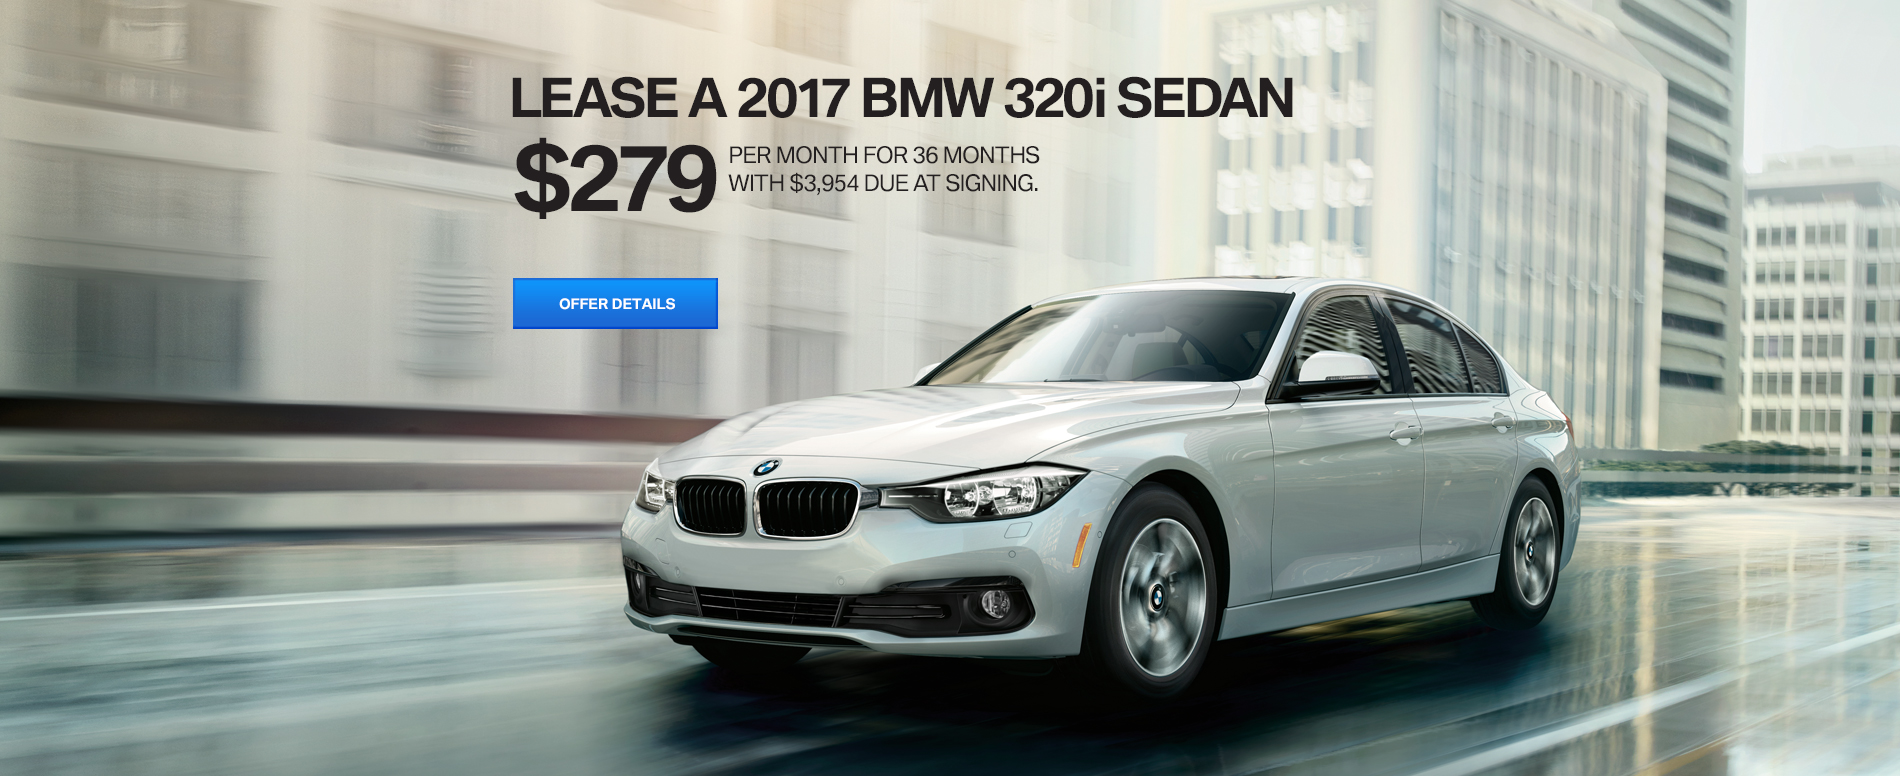 LEASE A 2017 320i SEDAN FOR $279 /MO FOR 36 MONTHS